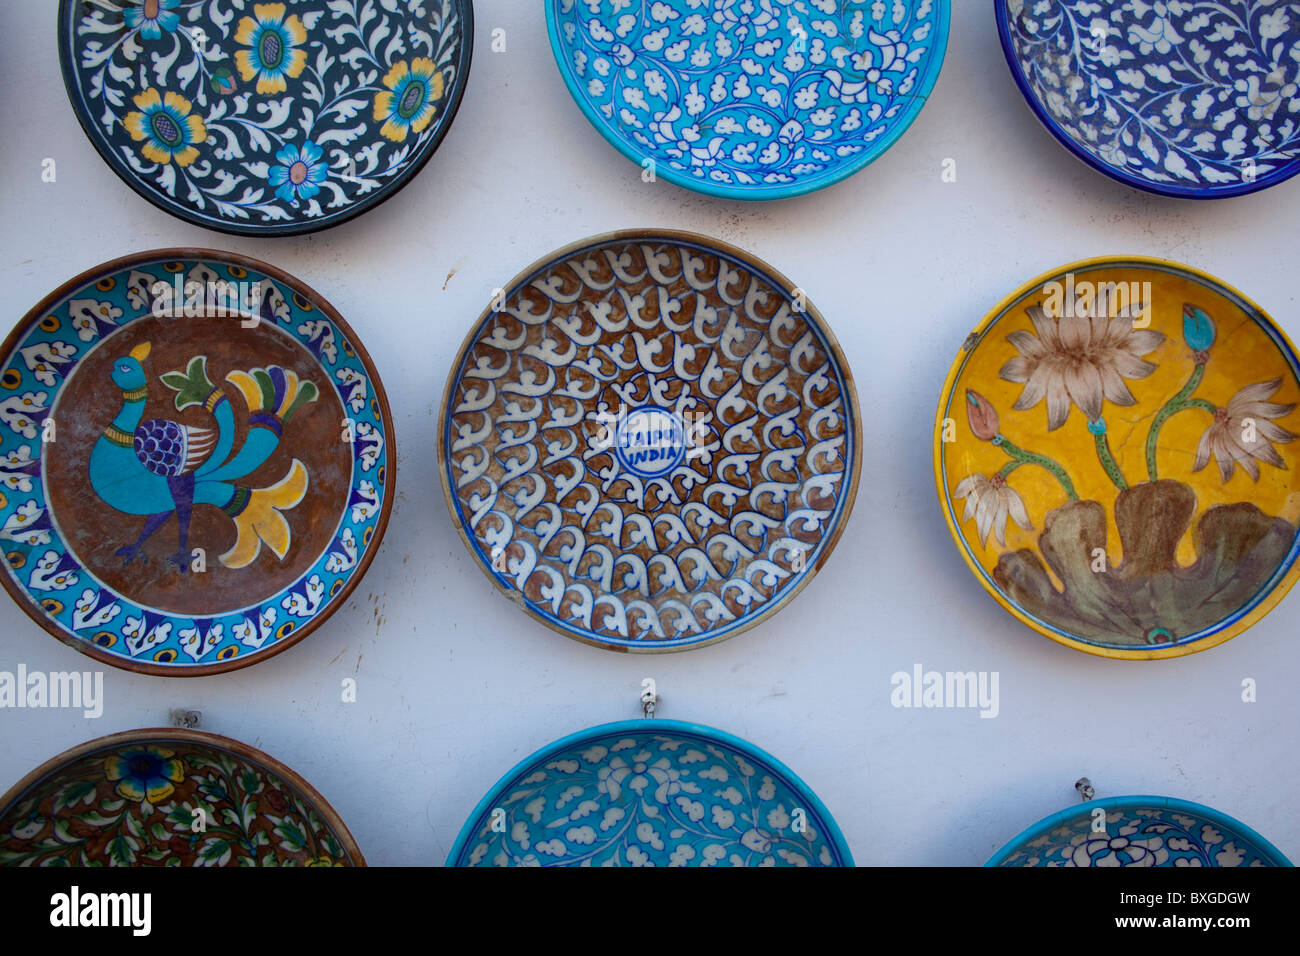 Plates on a market stall, Old City, Jaipur, Rajasthan, India Stock ...